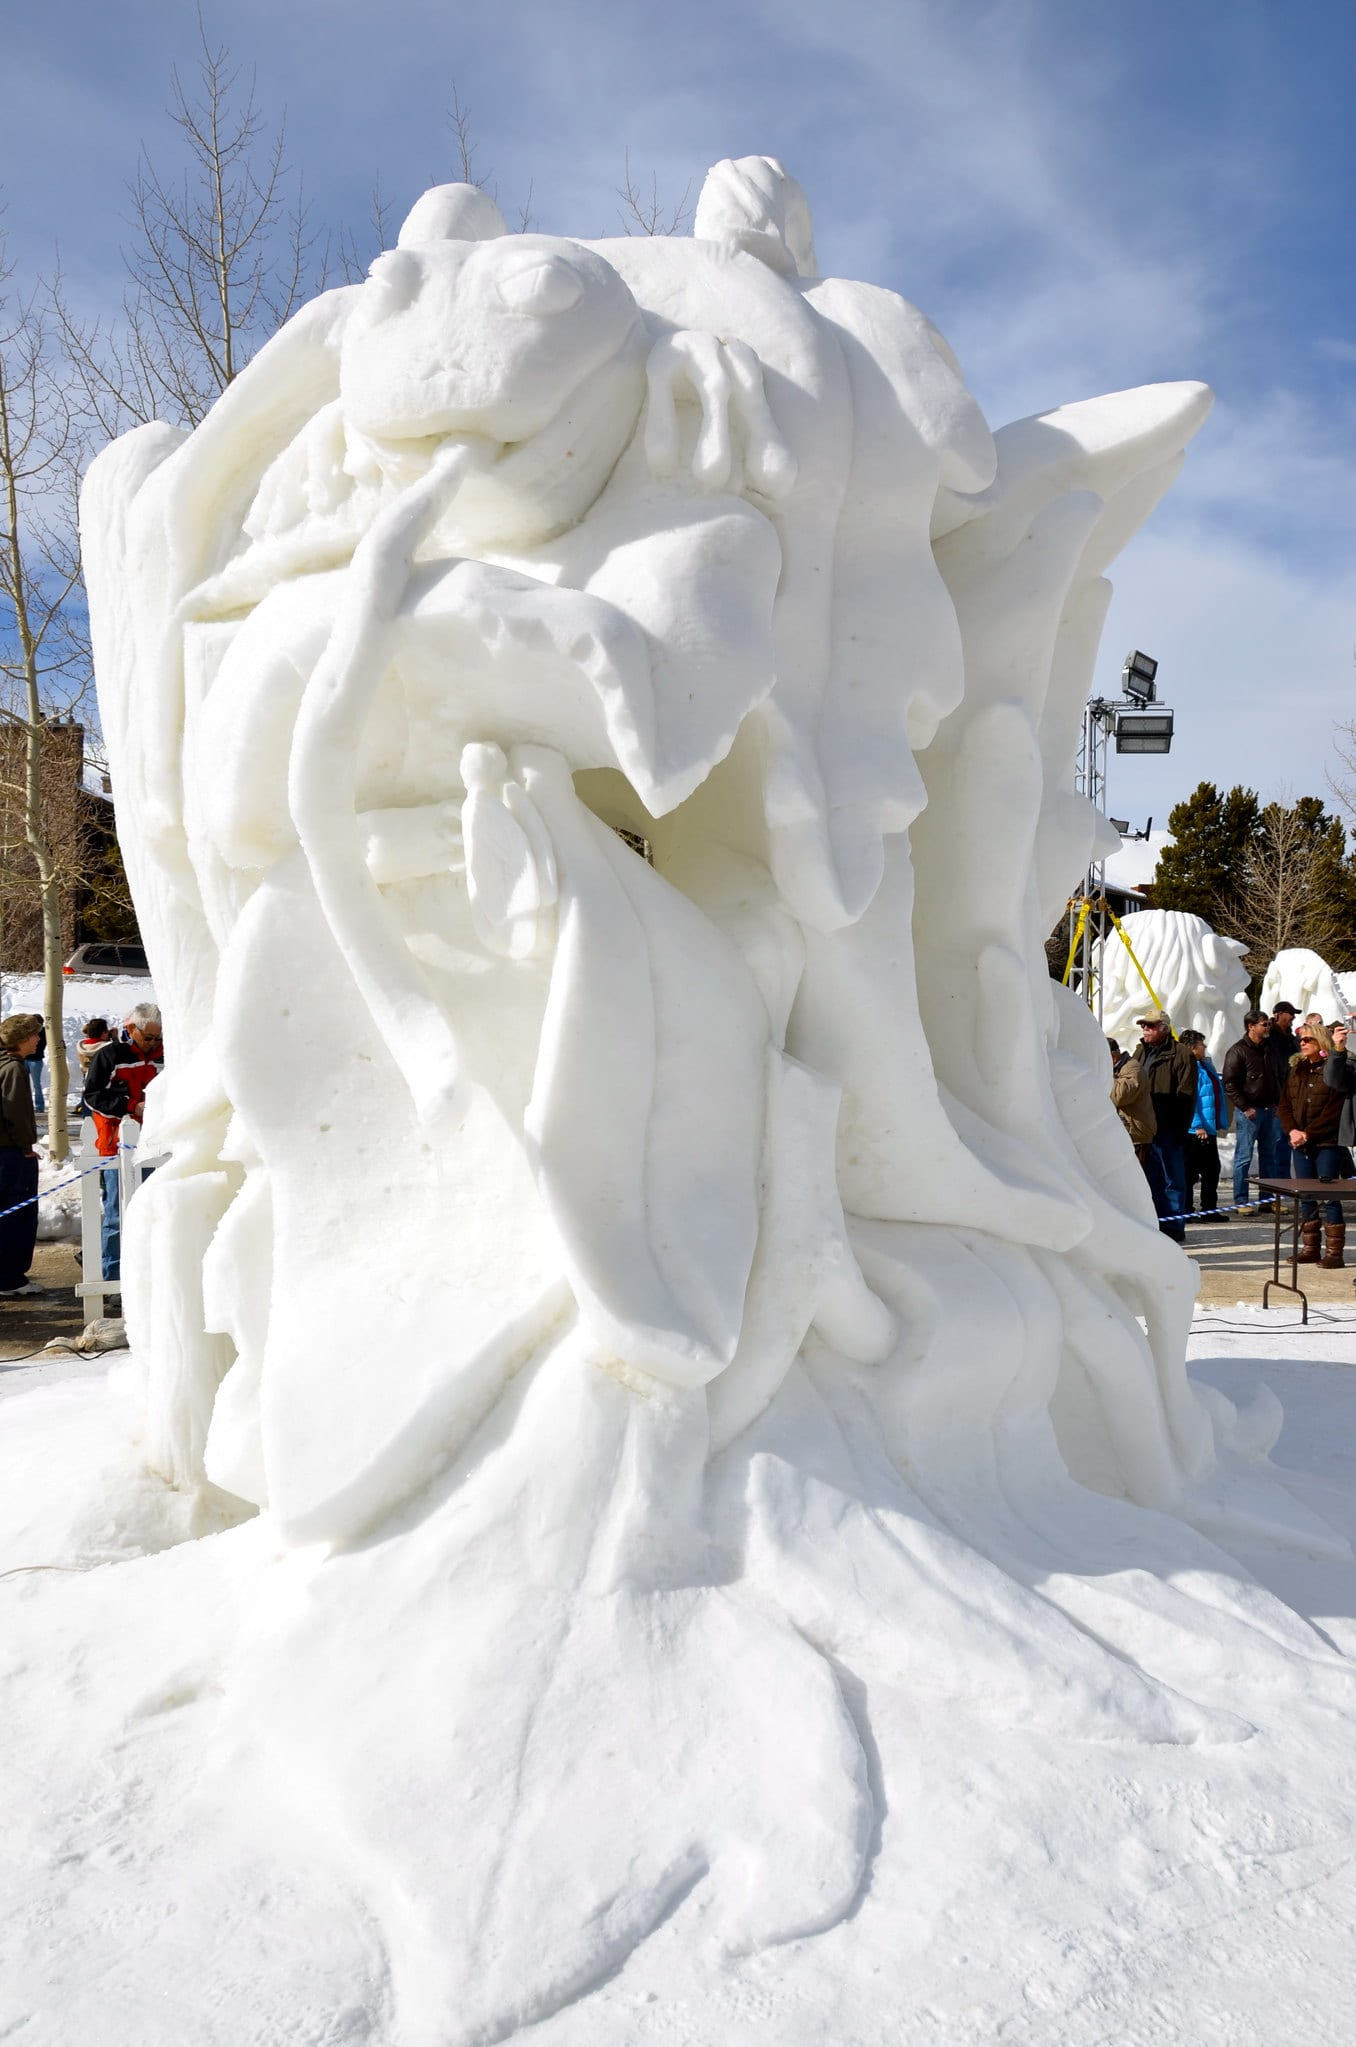 image of a snow sculpture